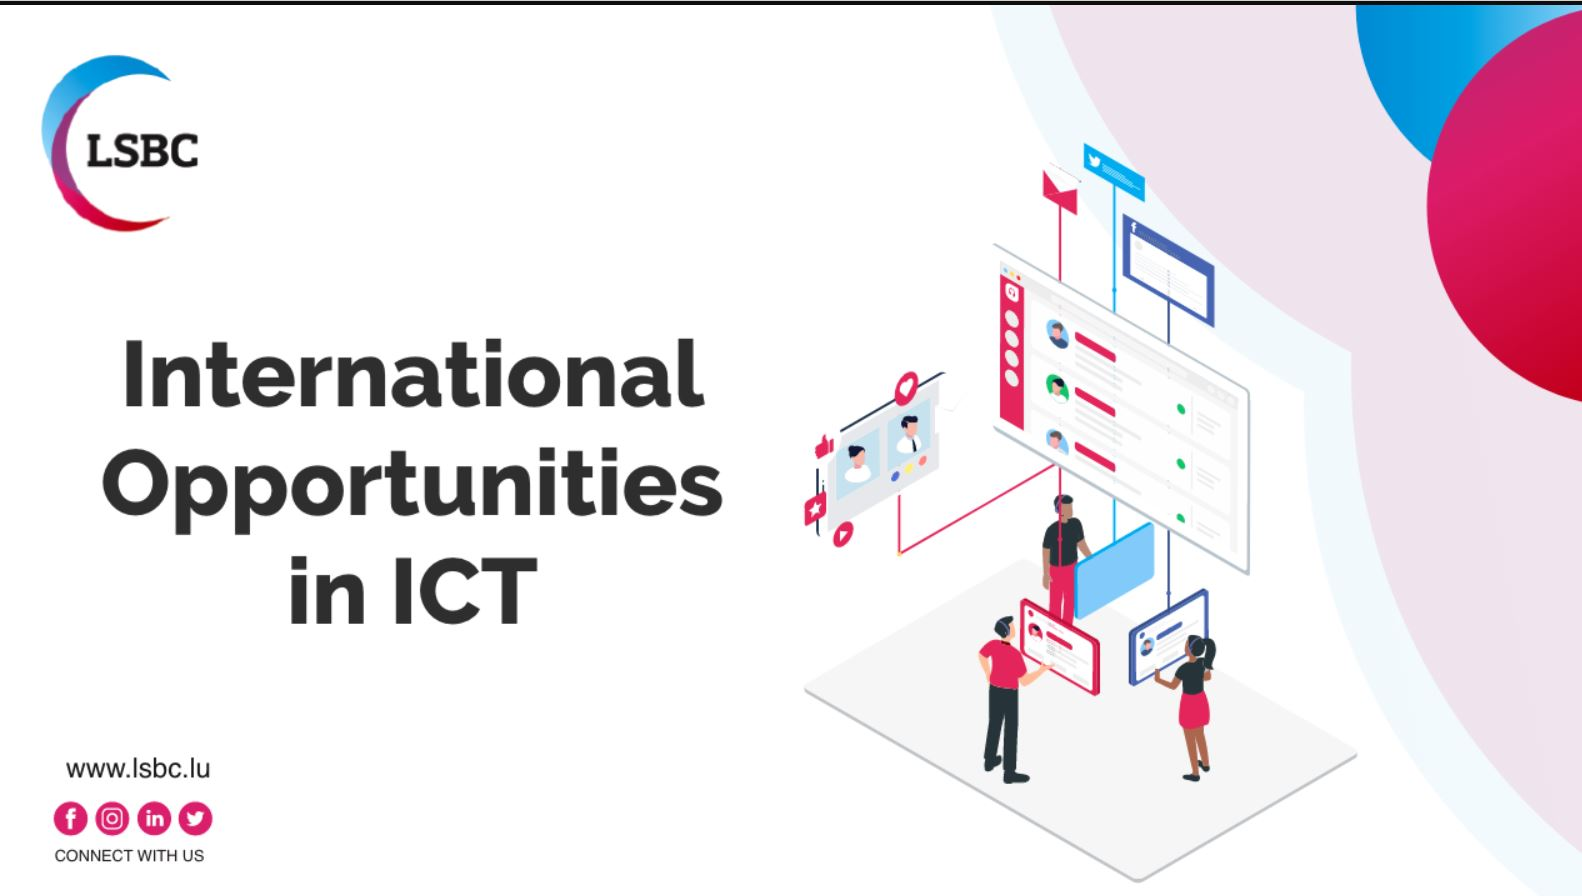 International opportunities in ICT